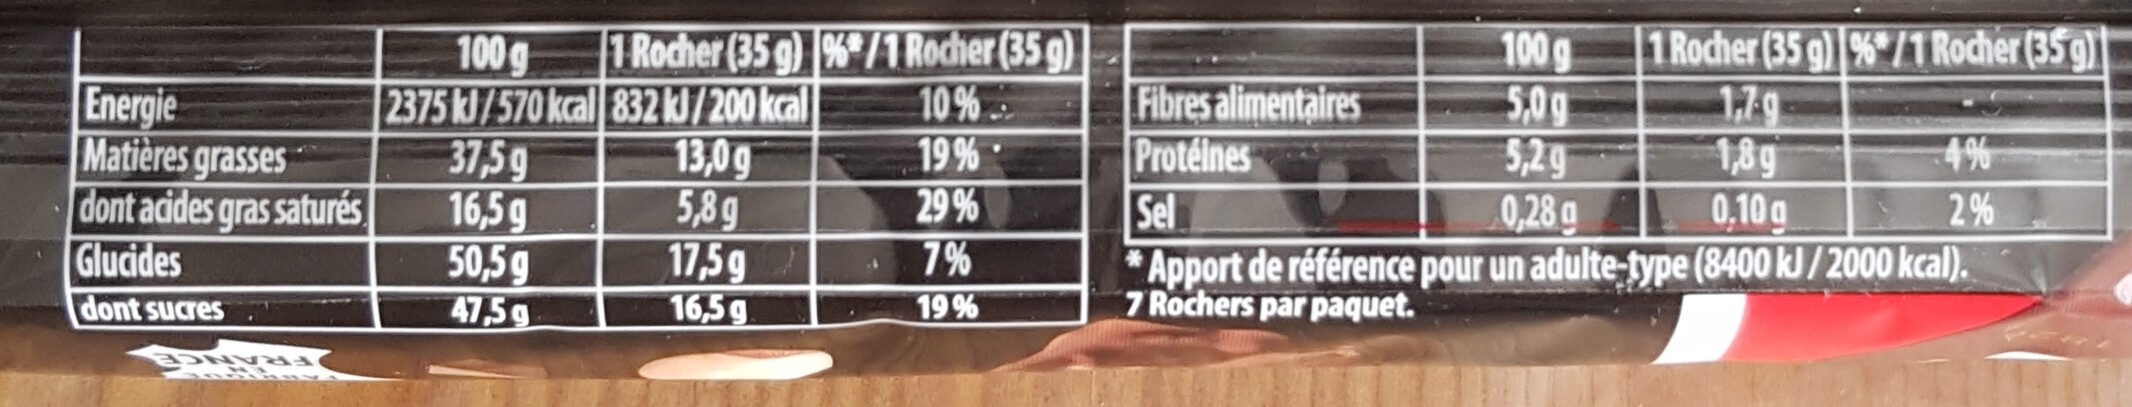 Rocher au chocolat noir - Nutrition facts - fr